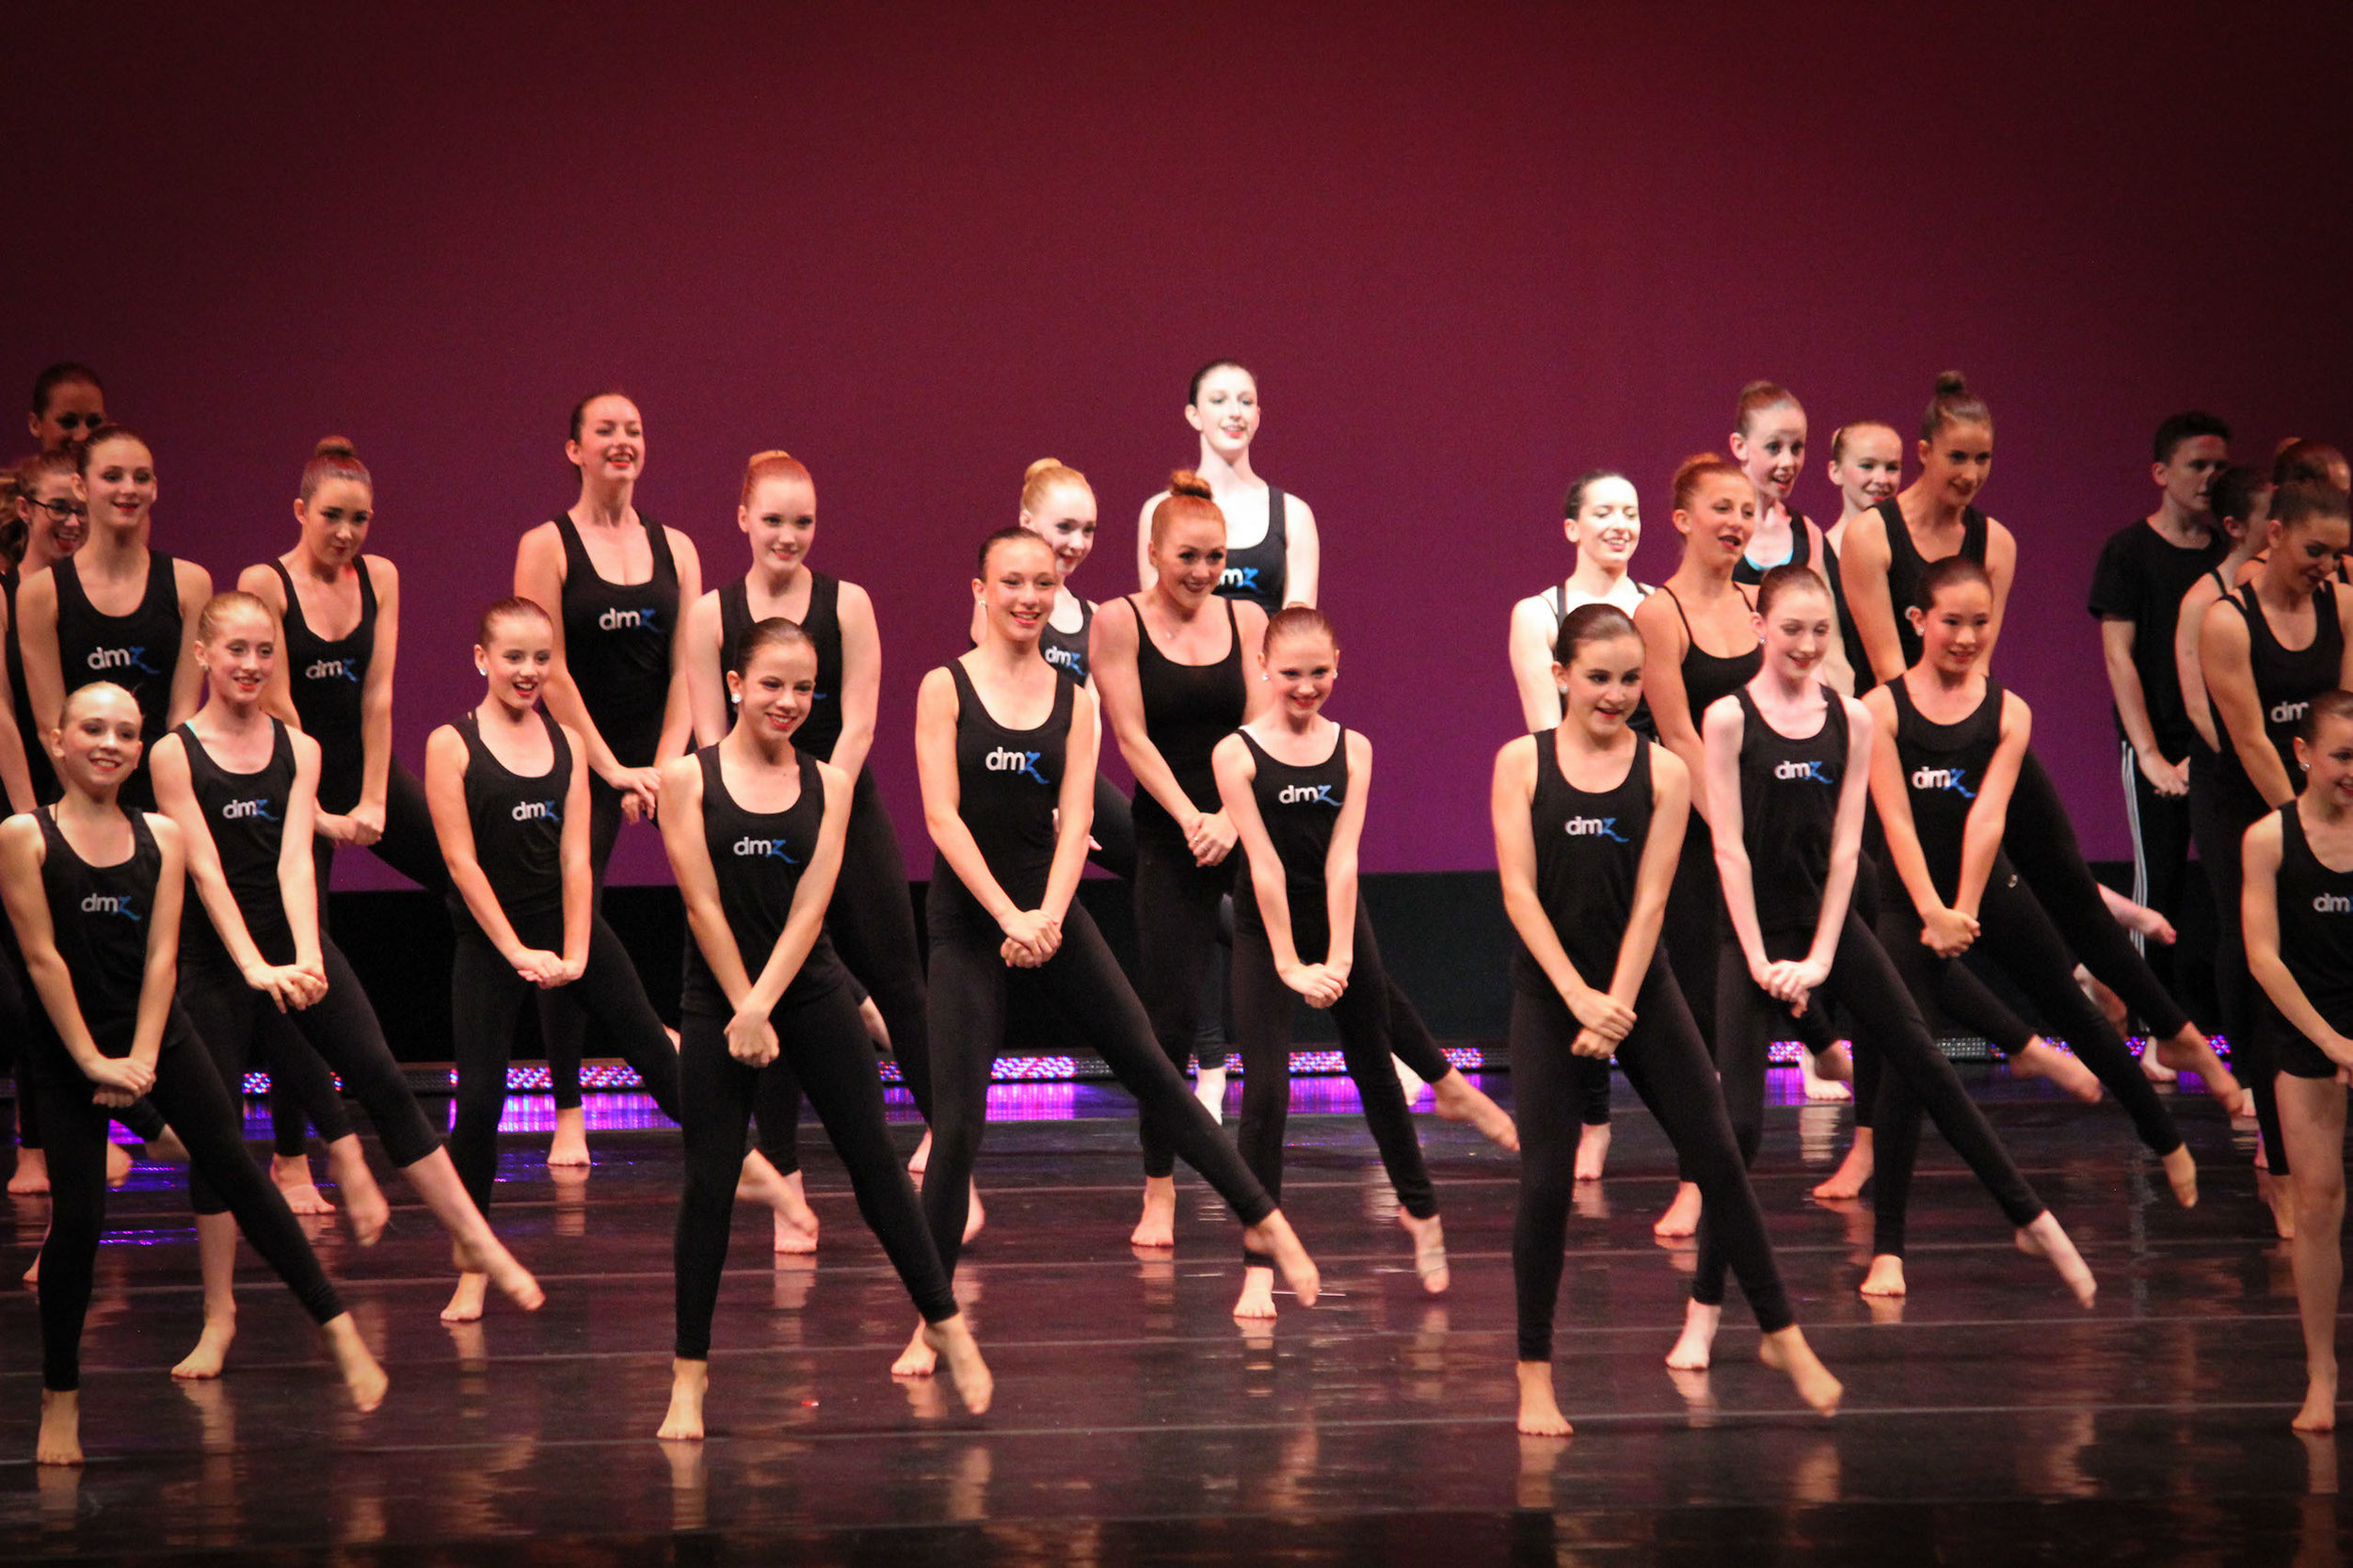 recital photo 1-4.jpg